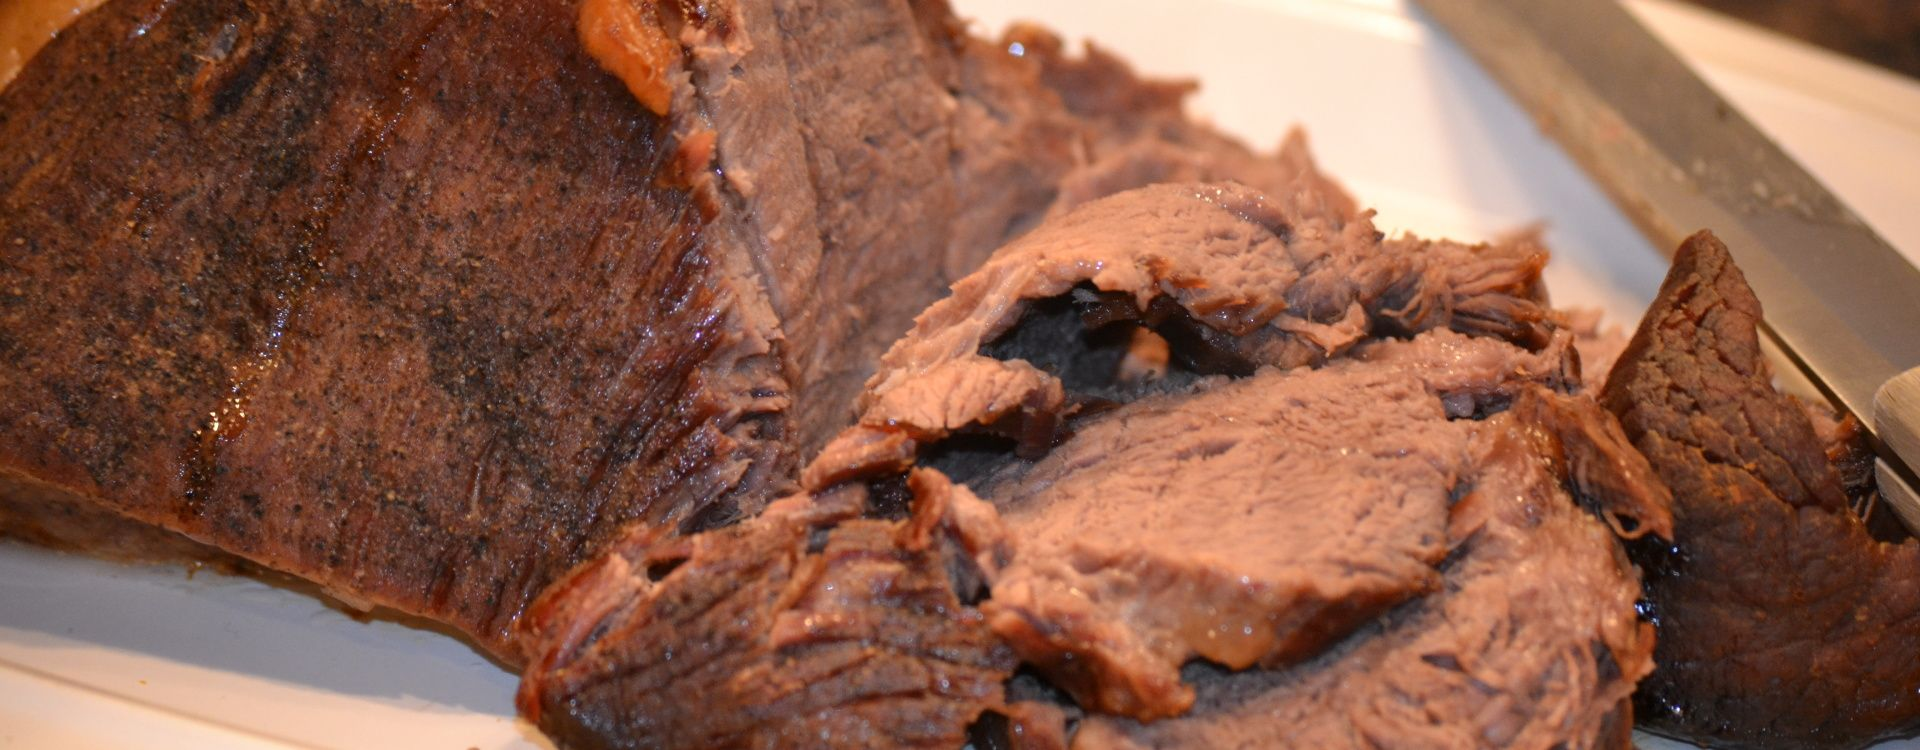 Roast beef- one of our favorites cuts of beef and one of the simplest meals to prepare.